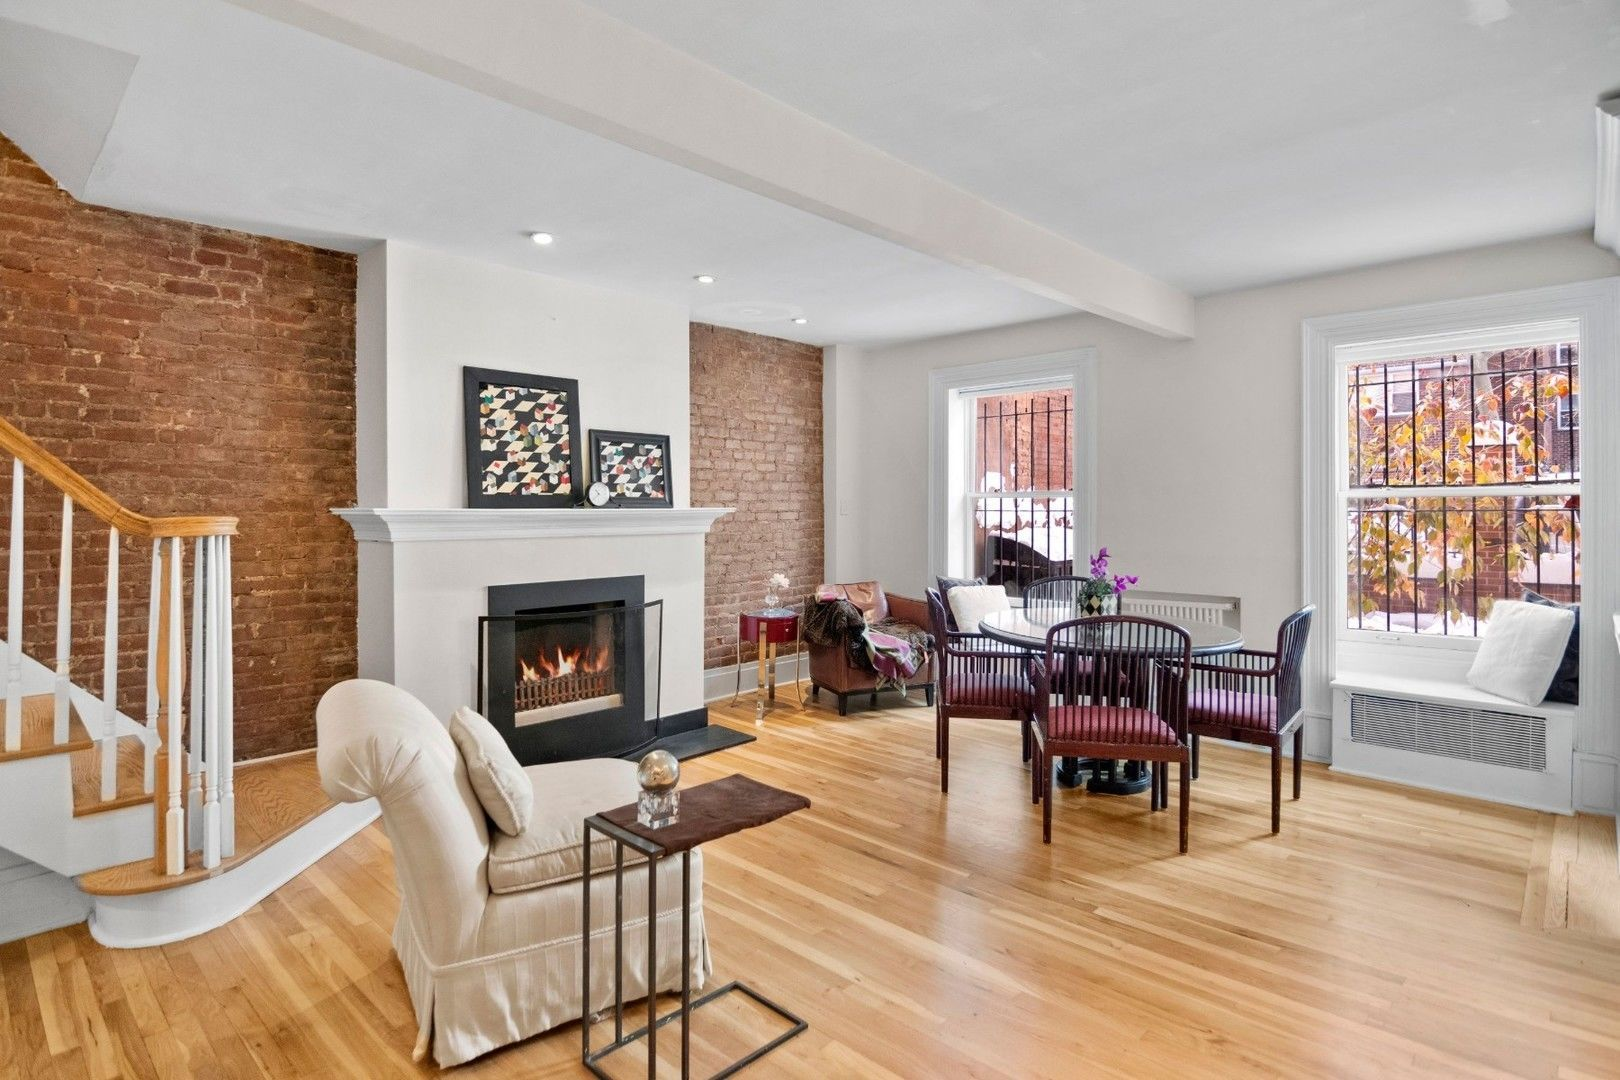 Apartment for sale at 303 West 29th Street, Apt B